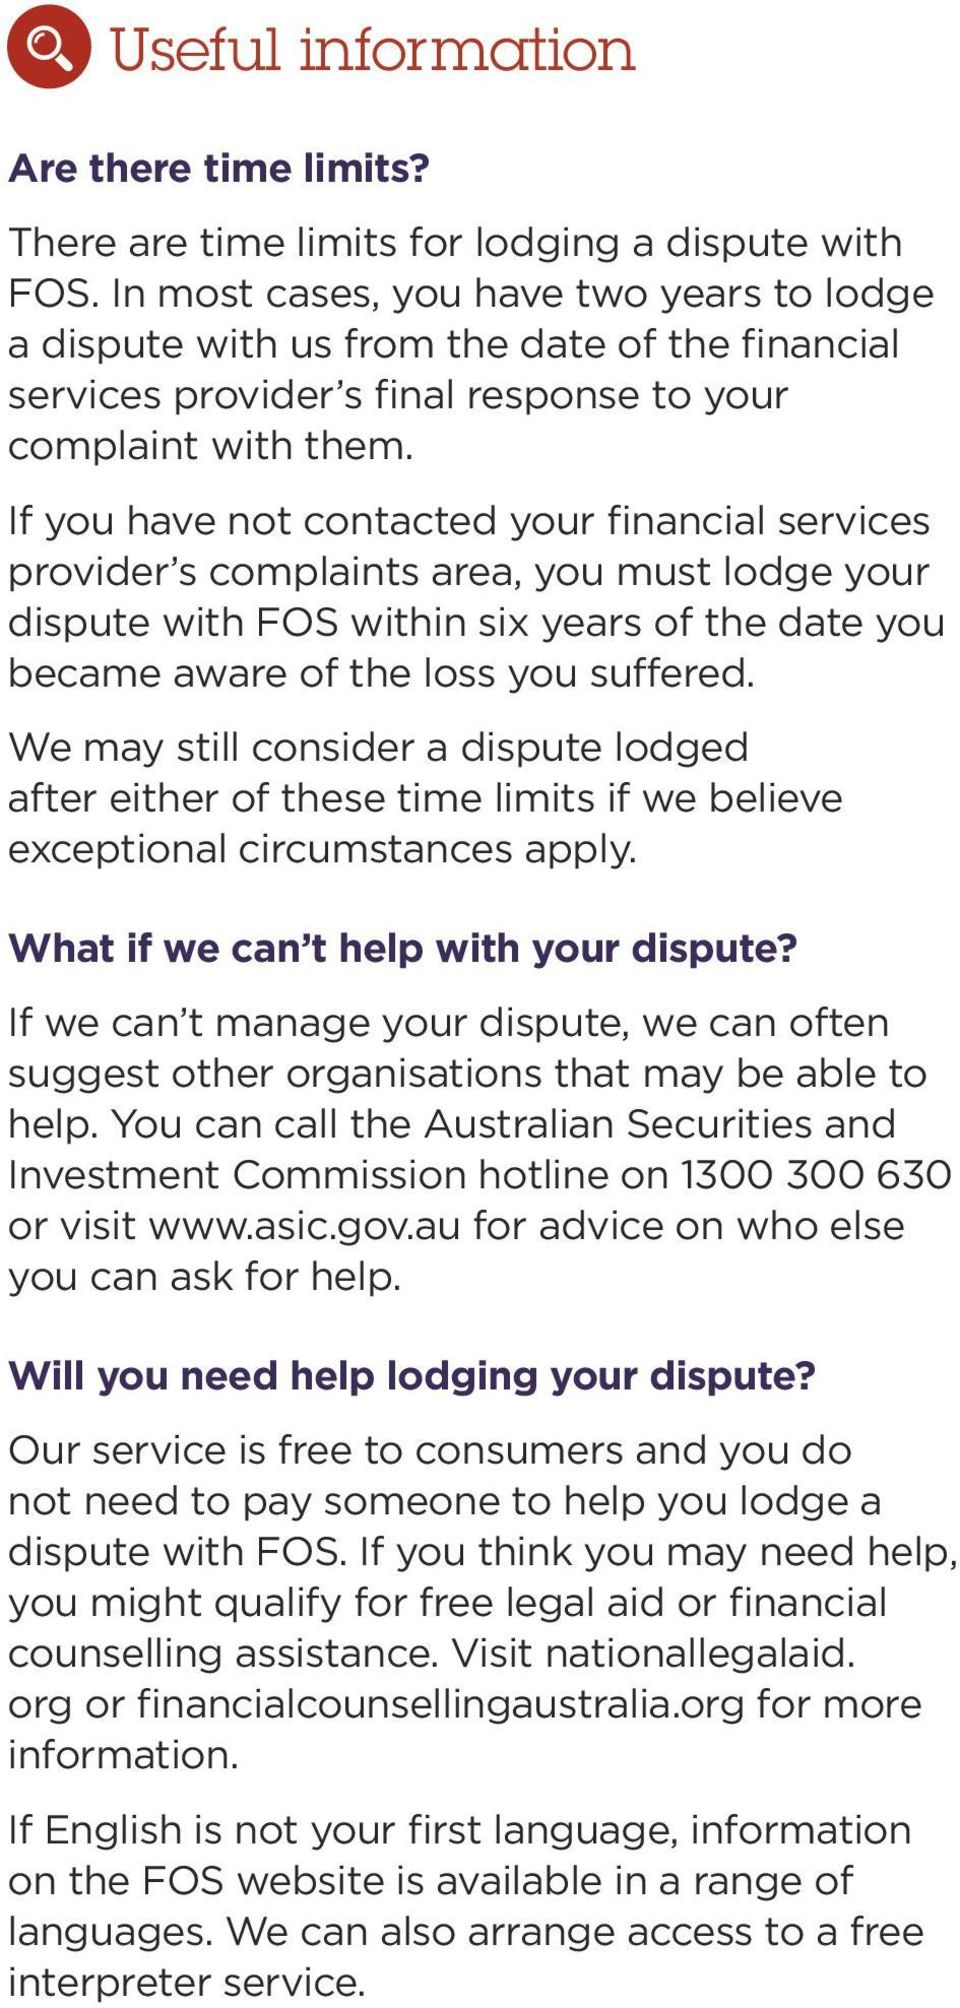 If you have not contacted your financial services provider s complaints area, you must lodge your dispute with FOS within six years of the date you became aware of the loss you suffered.